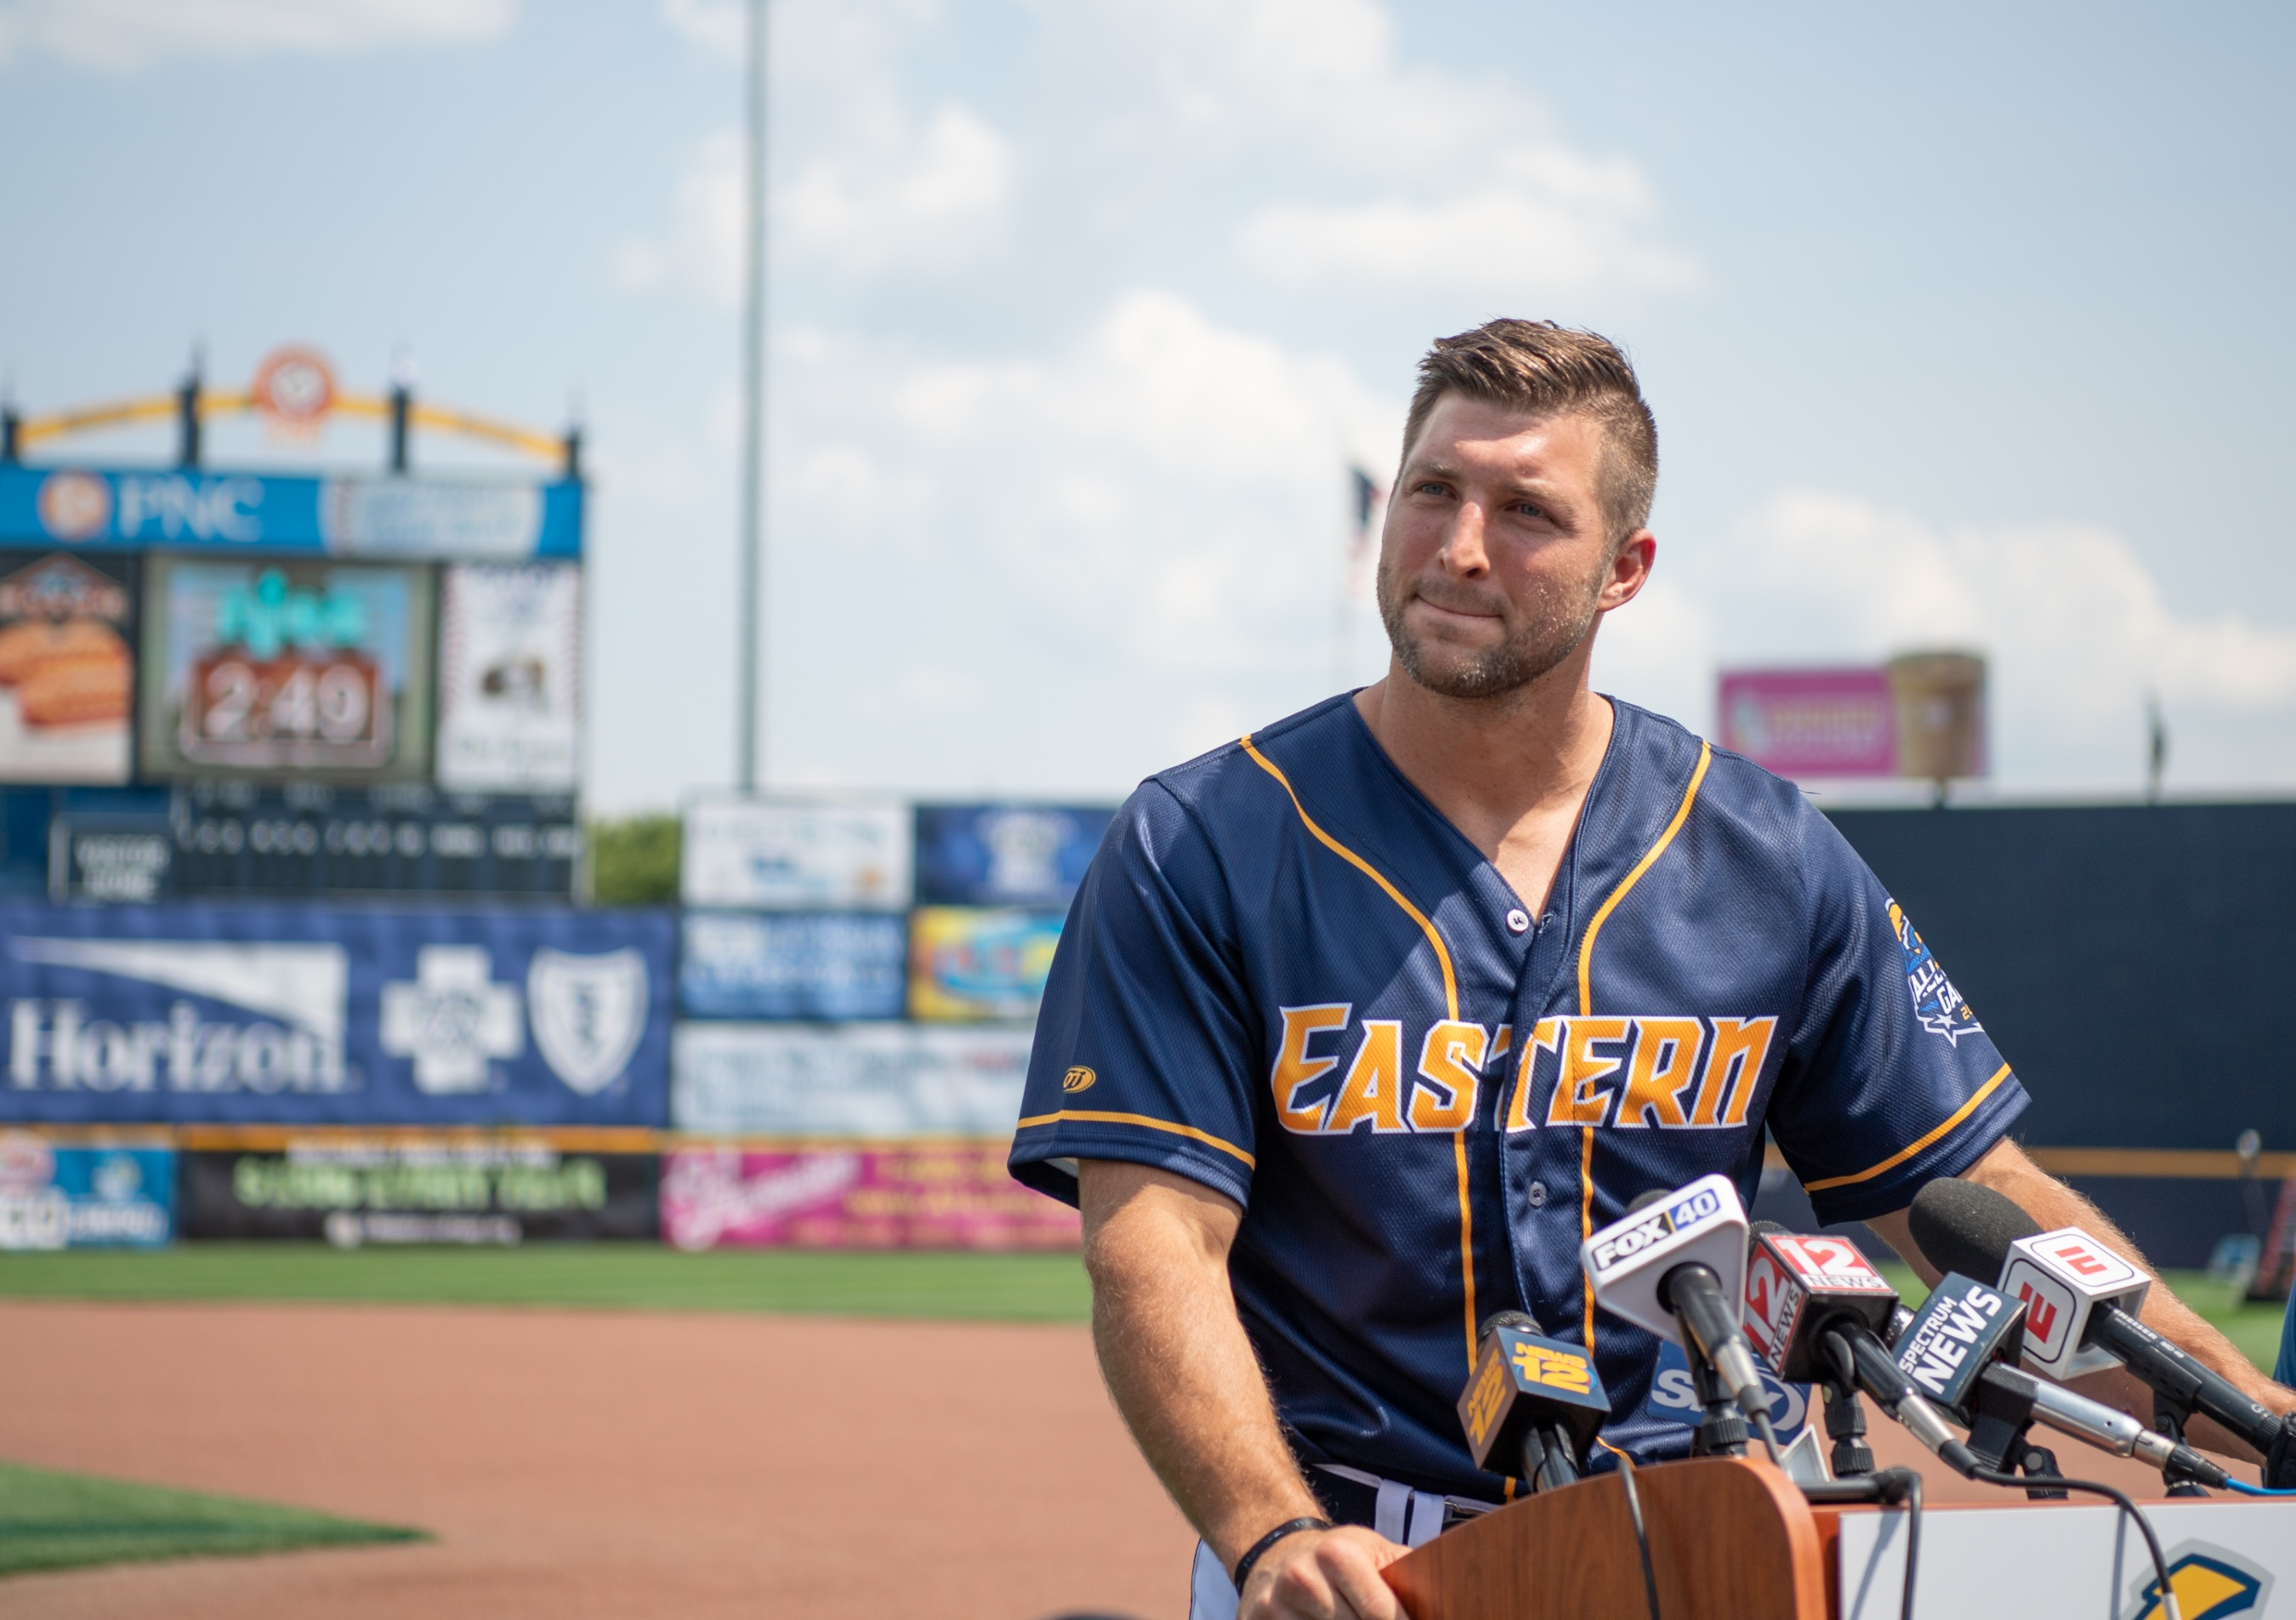 official photos a2398 de270 Tim Tebow Appears At 2018 Eastern League Double-A All-Star ...